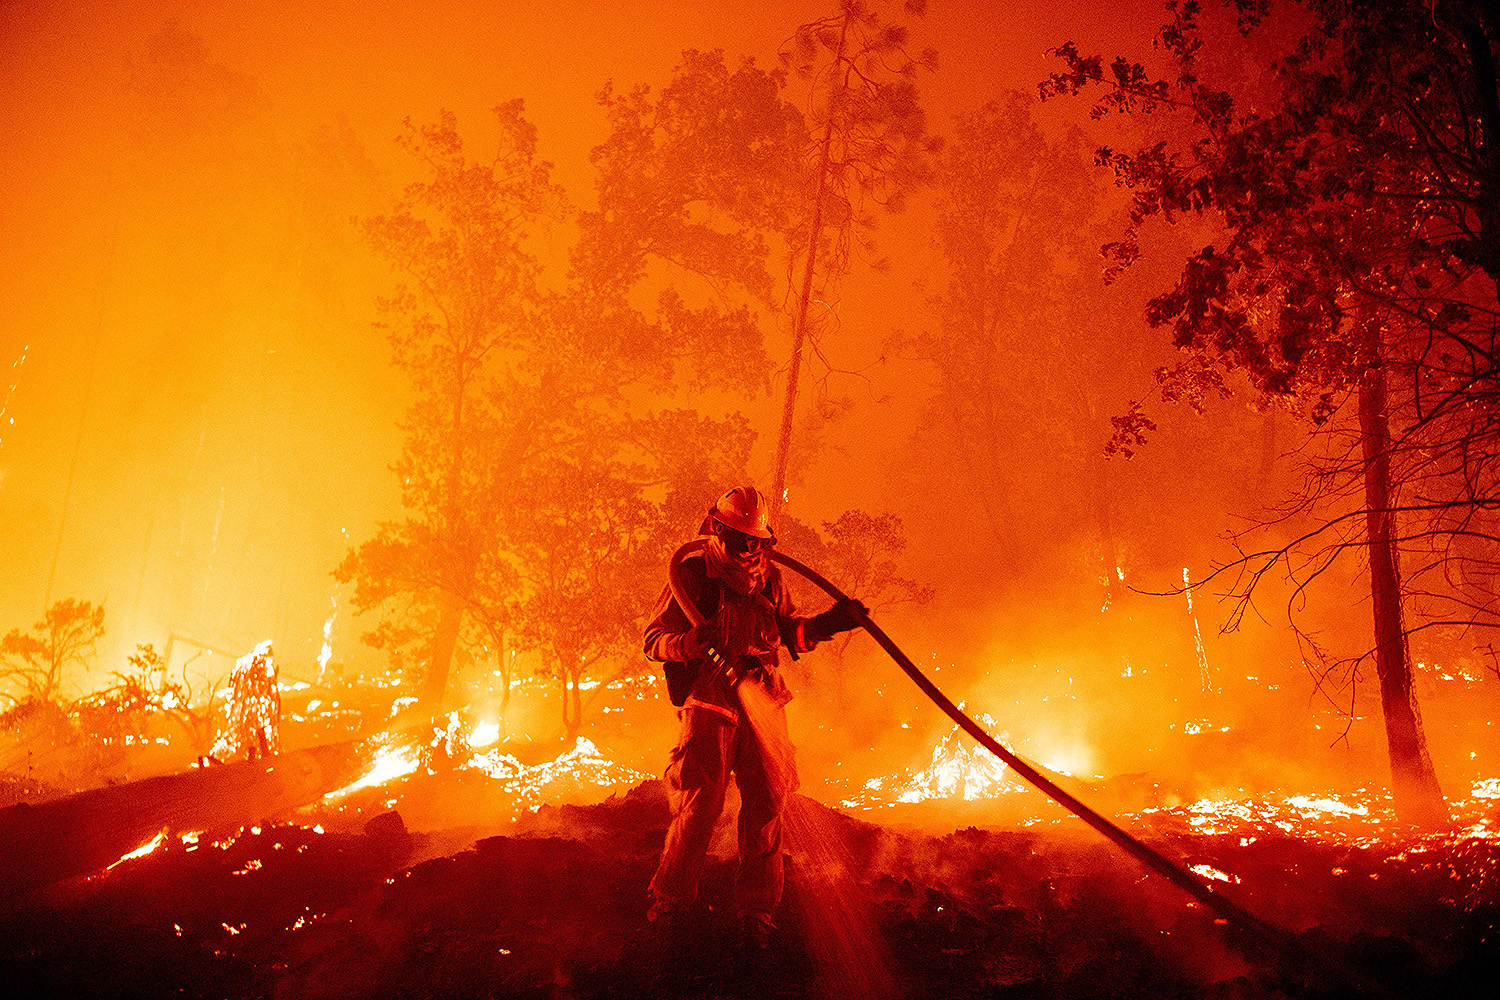 A firefighter douses flames as the Creek Fire pushes toward homes in the Cascadel Woods area of Madera County, California, on Sept. 7. JOSH EDELSON/AFP via Getty Images